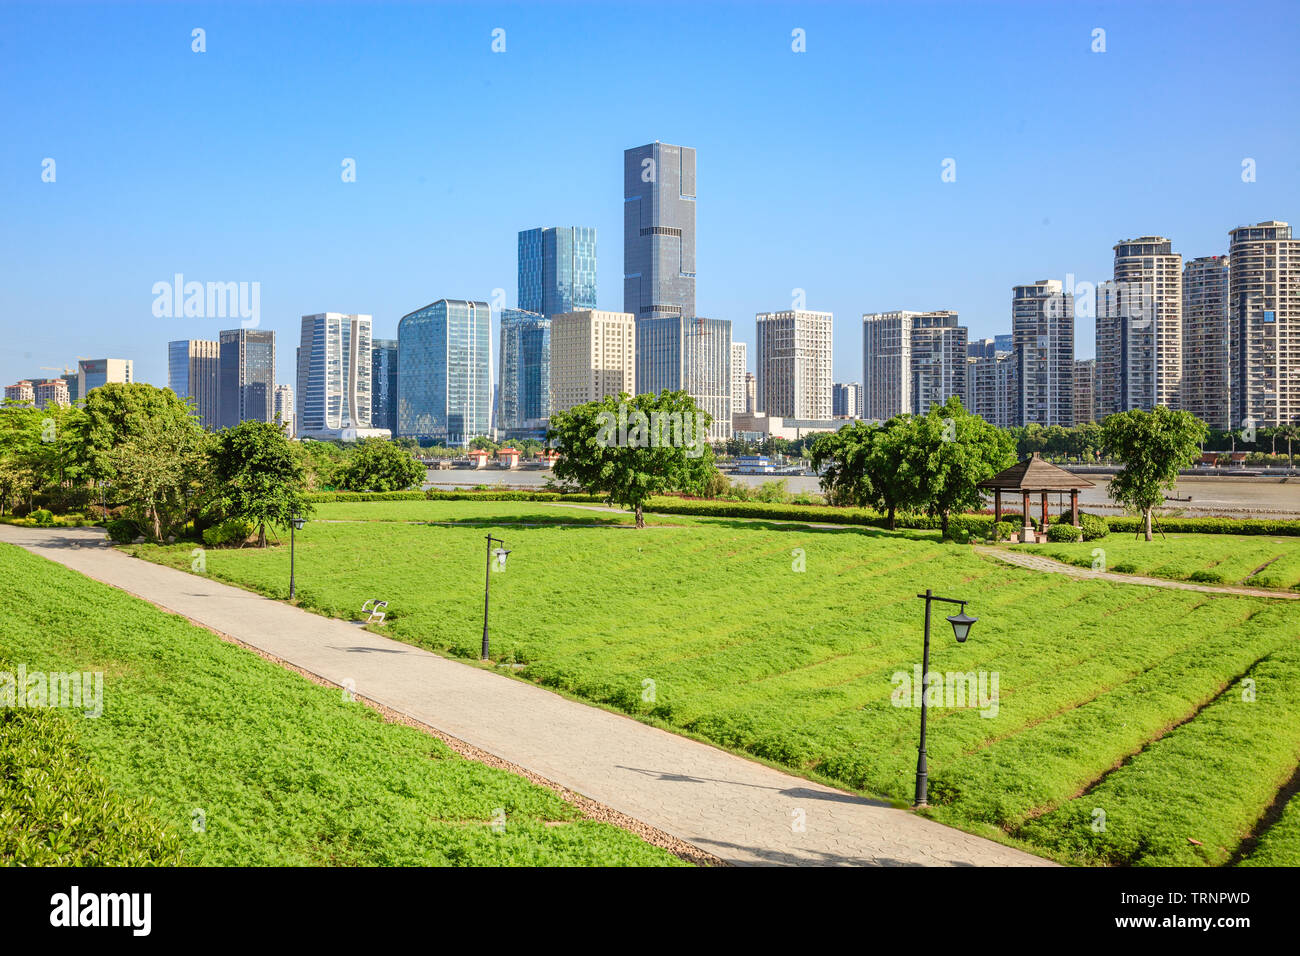 Cityscape and skyline of Fuzhou,viewed from green field in park,Fuzhou,China - Stock Image